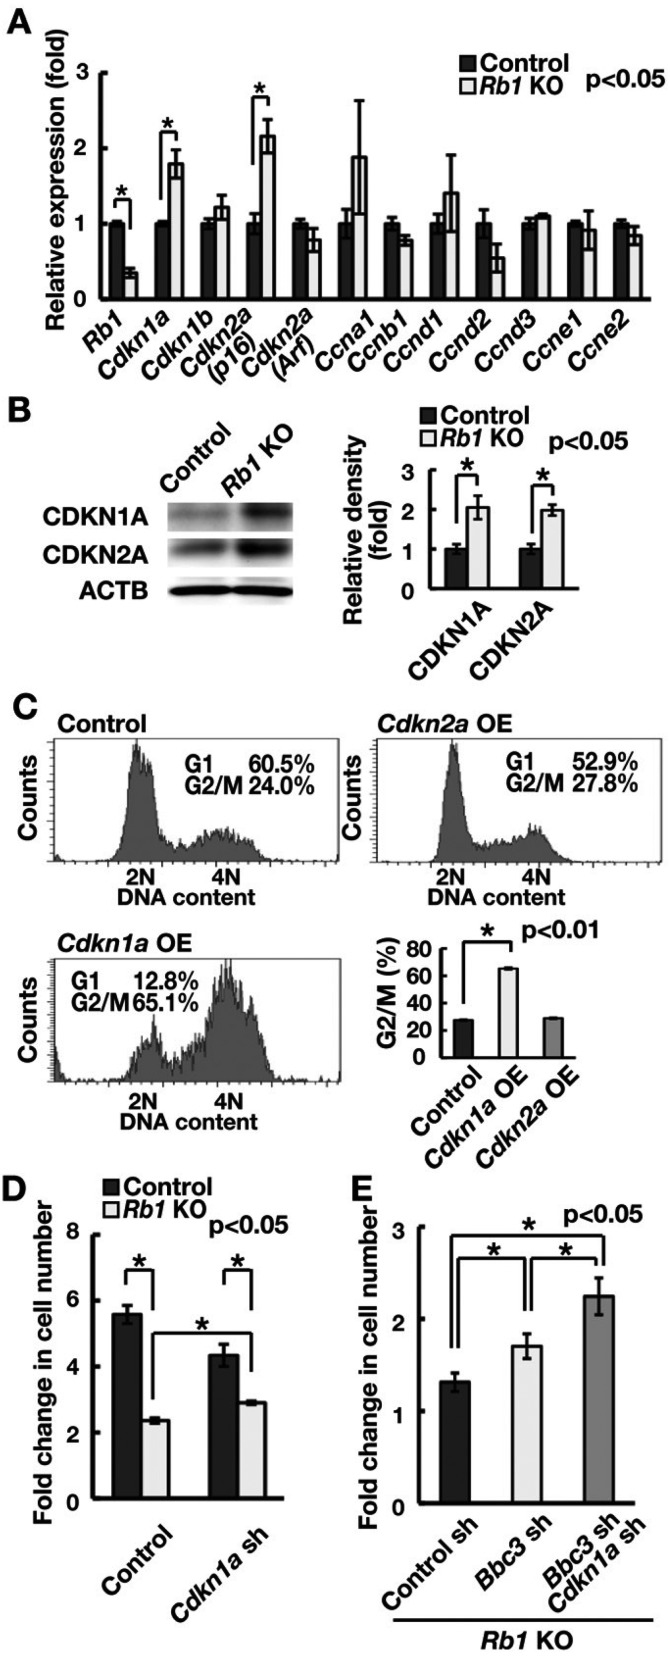 Suppression of the cell cycle by Cdkn1a induction following induction of Rb1 deficiency. (A) Real-time PCR analysis of cell cycle-related genes following Rb1 gene deletion. Cells were recovered 2 weeks after AxCANCre transfection (n = 3). (B) Western blot analysis of CDKI proteins following Rb1 gene deletion. Cells were recovered 2 weeks after AxCANCre transfection. The graph shows relative band intensity (n = 3). (C) Cell cycle analysis by Hoechst 33342 following Cdkn1a or Cdkn2a OE (MOI = 10). (D) Increased cell recovery of Rb1 KO GS cells following depletion of Cdkn1a . Cells were transfected with AxCANCre and a lentivirus expressing shRNA against Cdkn1a and recovered 1 week after infection (n = 3; MOI = 4). (E) Increased cell recovery of Rb1 KO GS cells following double depletion of Bbc3 and Cdkn1a . Cells were transfected with AxCANCre and a lentivirus expressing shRNA against the indicated genes and recovered 1 week after infection (n = 8; MOI = 4).